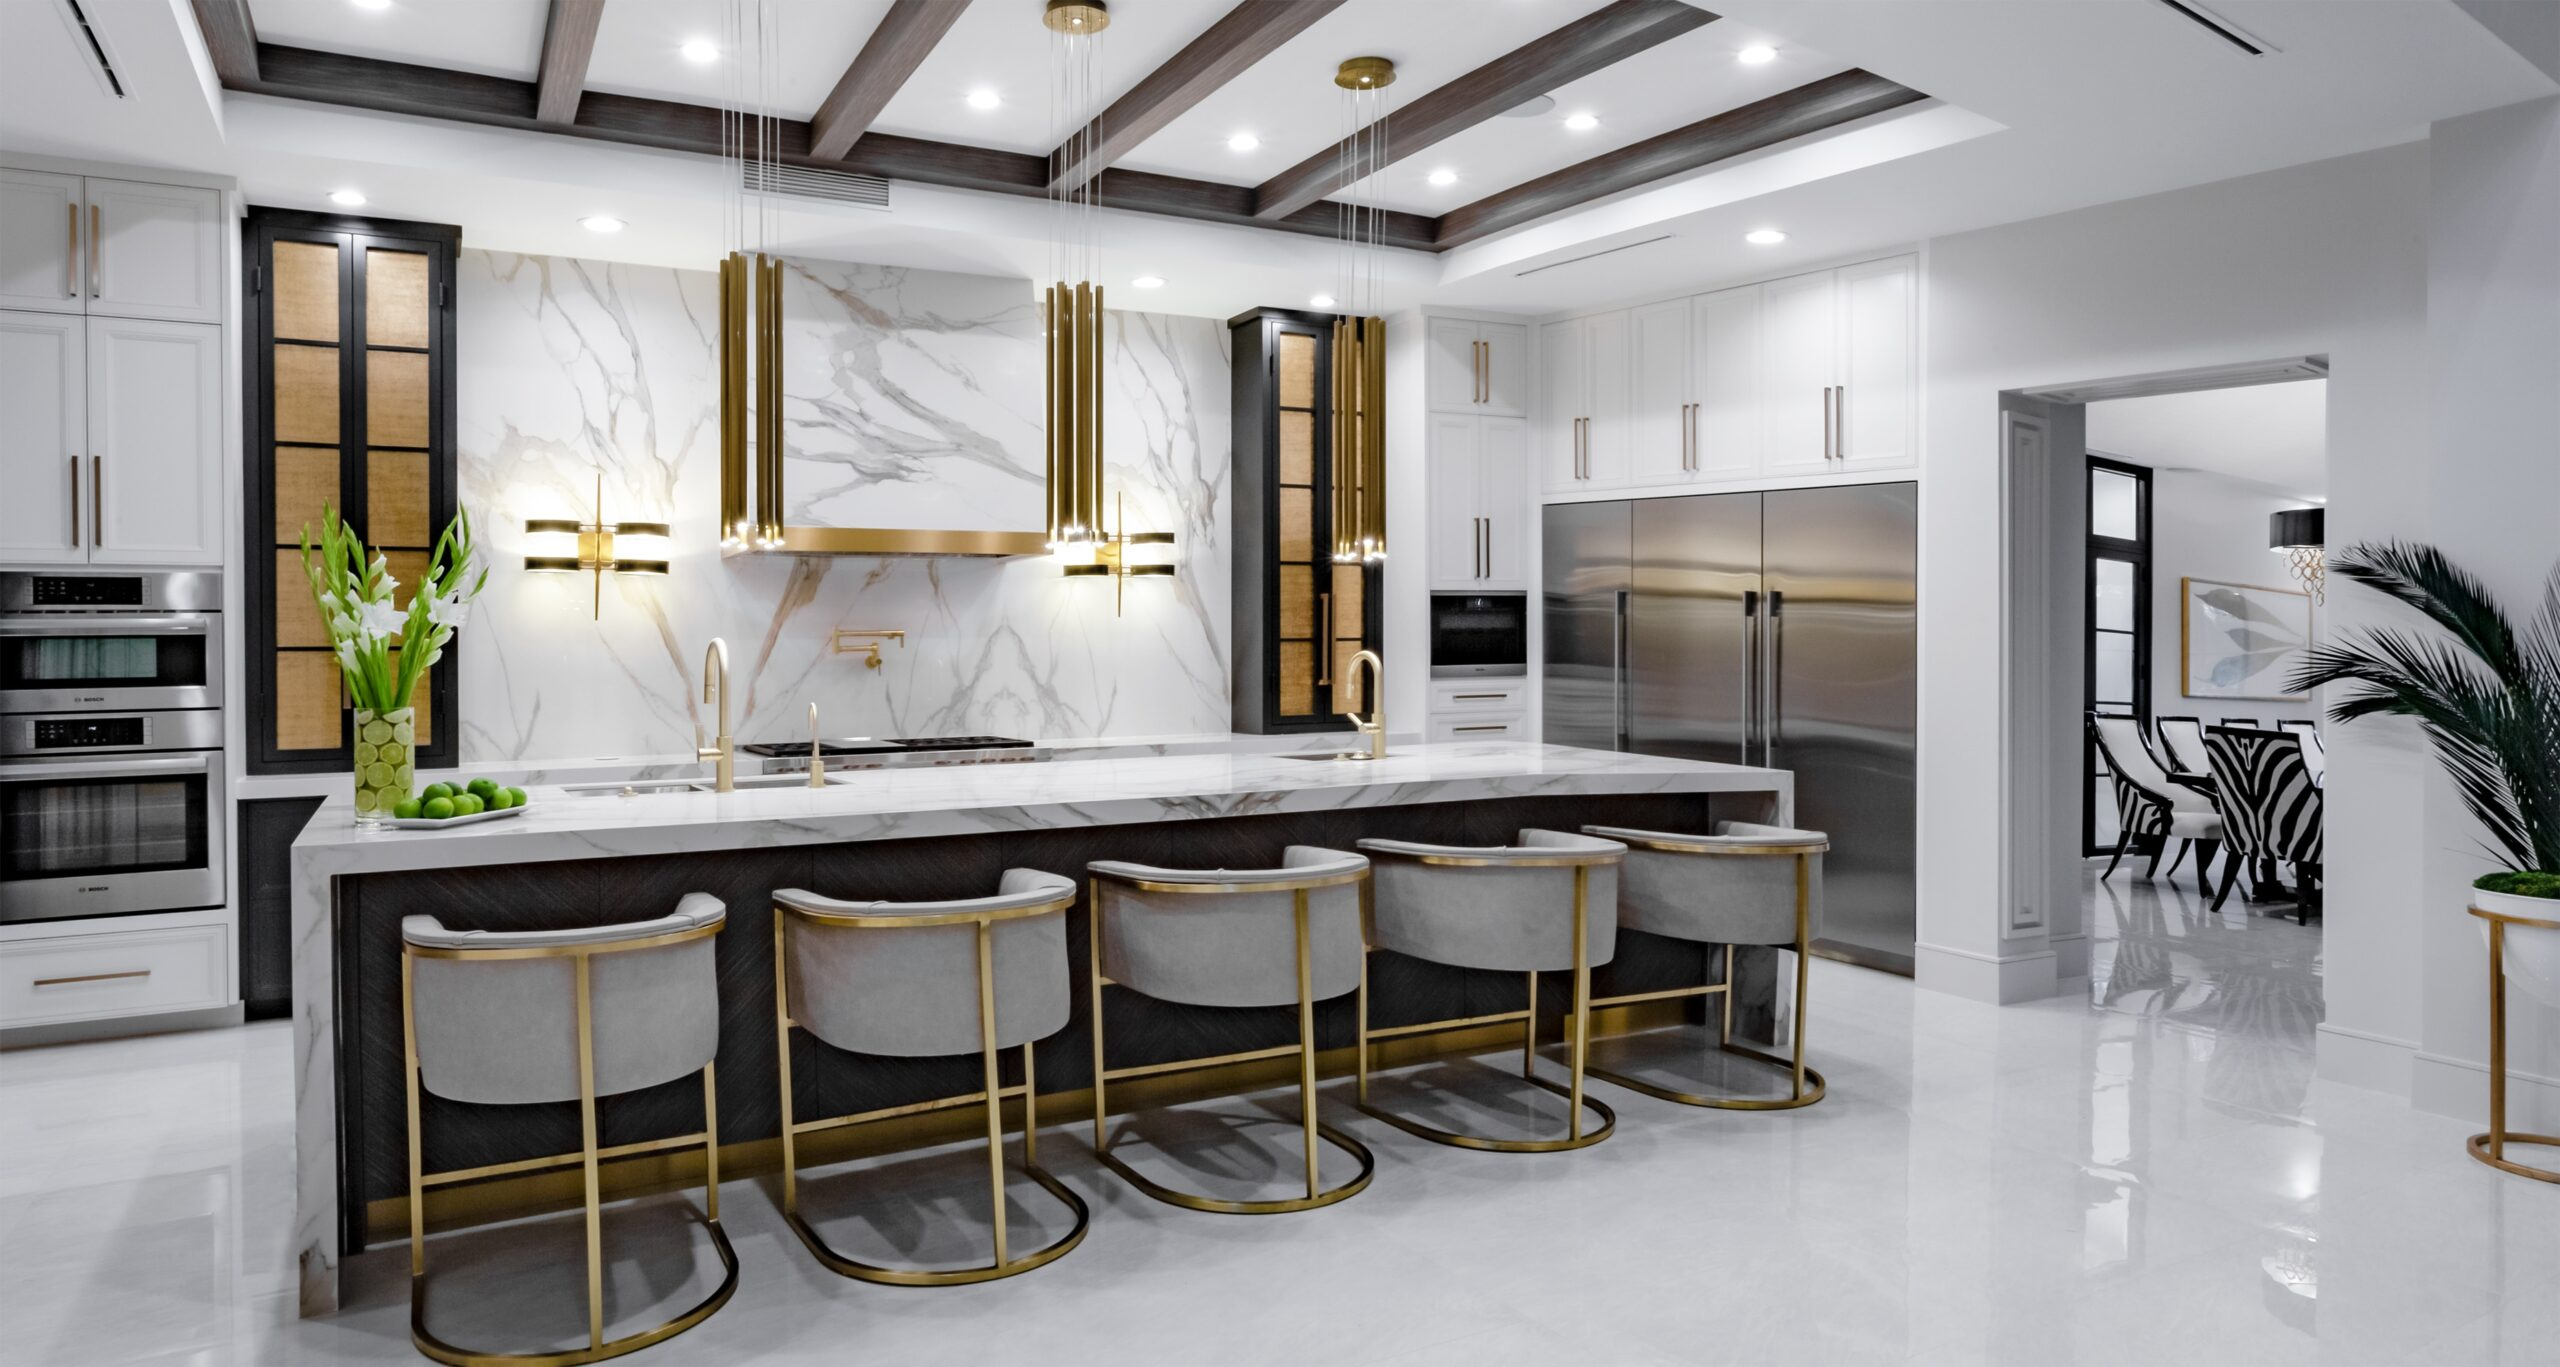 New Construction Design Build Sweetlake Interior Design Llc Top Houston Interior Decorator Remodeling Firm Lori Toups Fenton Allied Asid Houston Texas